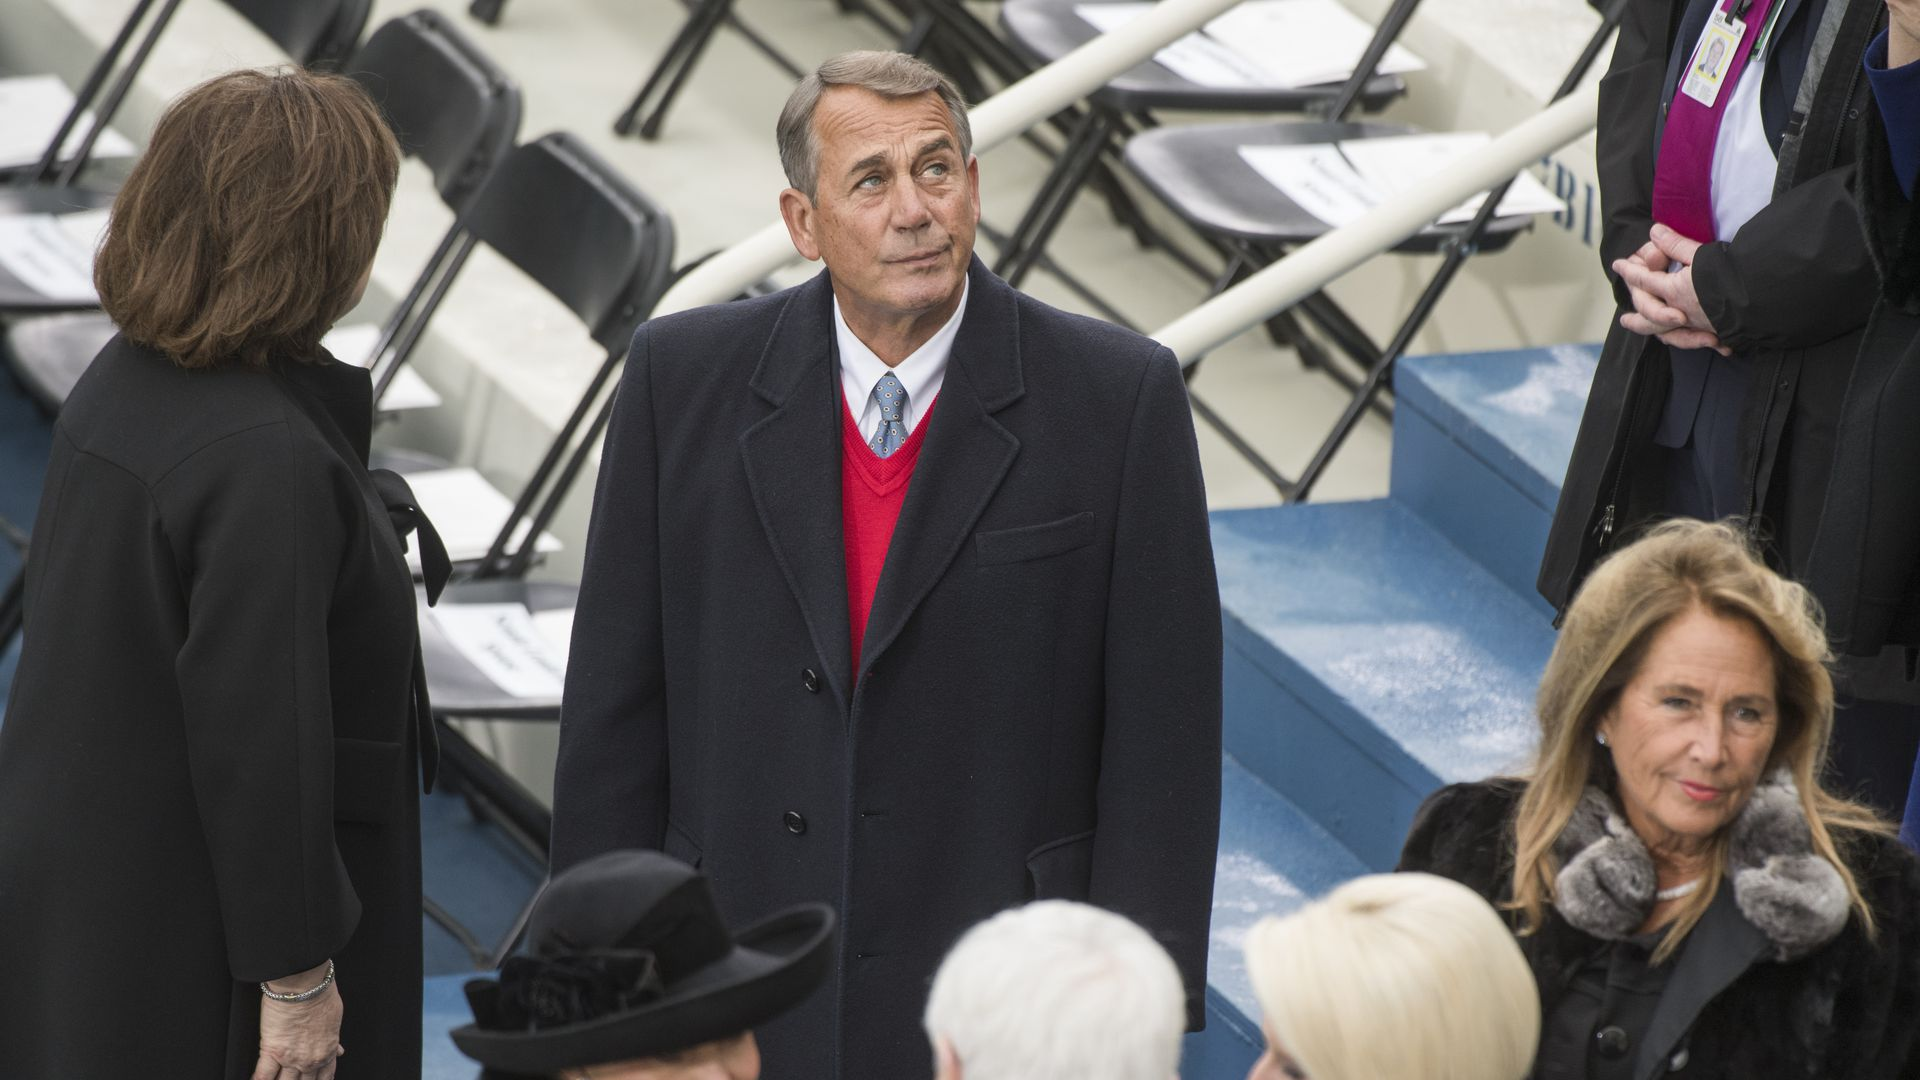 Boehner standing in a coat looking up